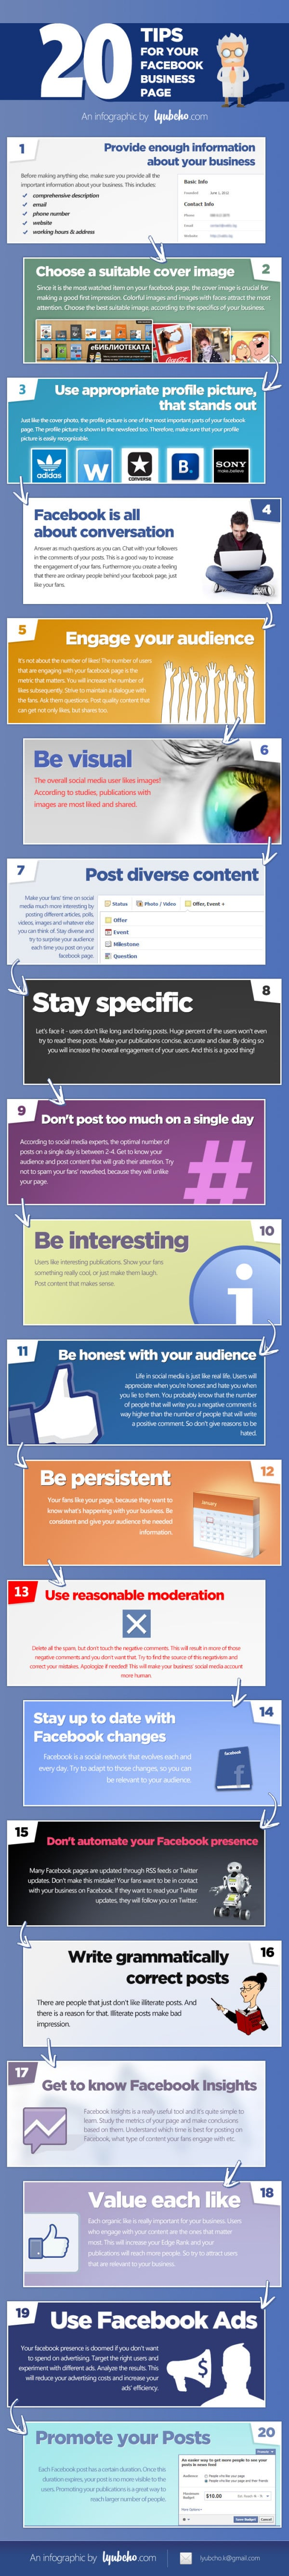 Killer Tips to Reach Target Audiences on Facebook Business Page